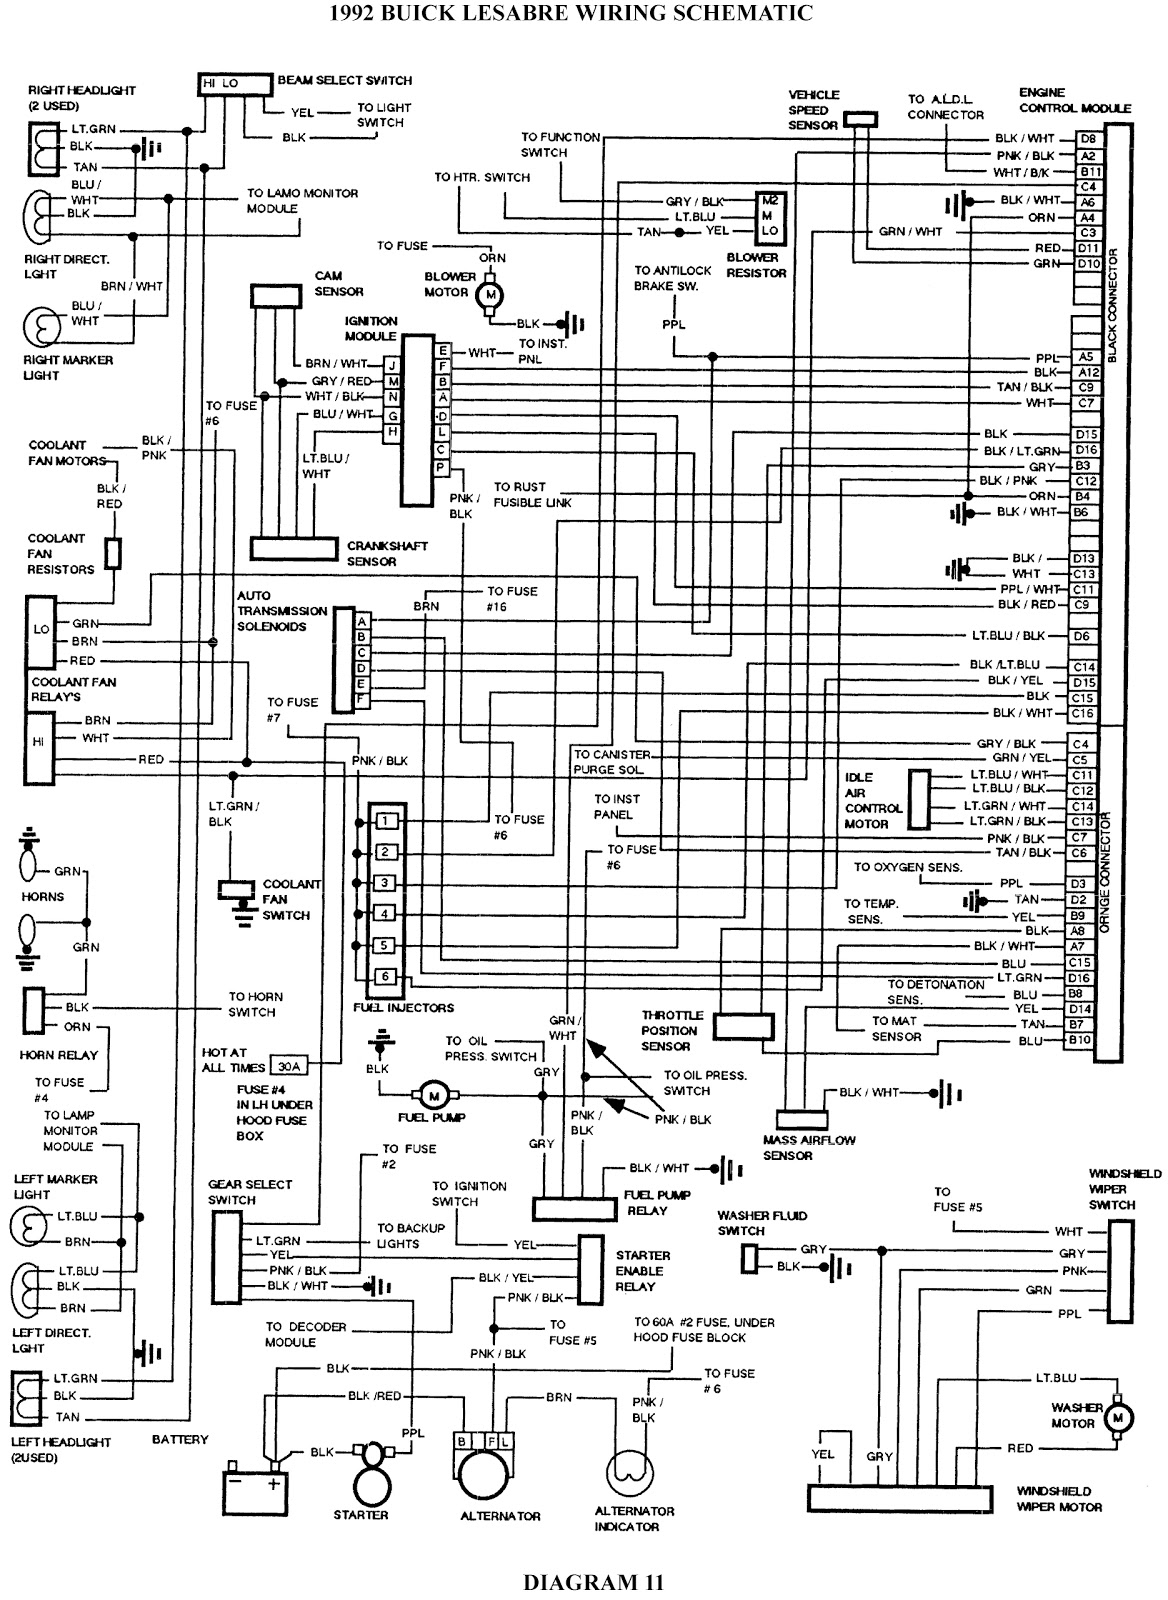 wrg 9829 ac wiring diagram for 2002 buick lesabre 1993 ac wiring diagram for 2002 buick lesabre 1993 [ 1168 x 1600 Pixel ]